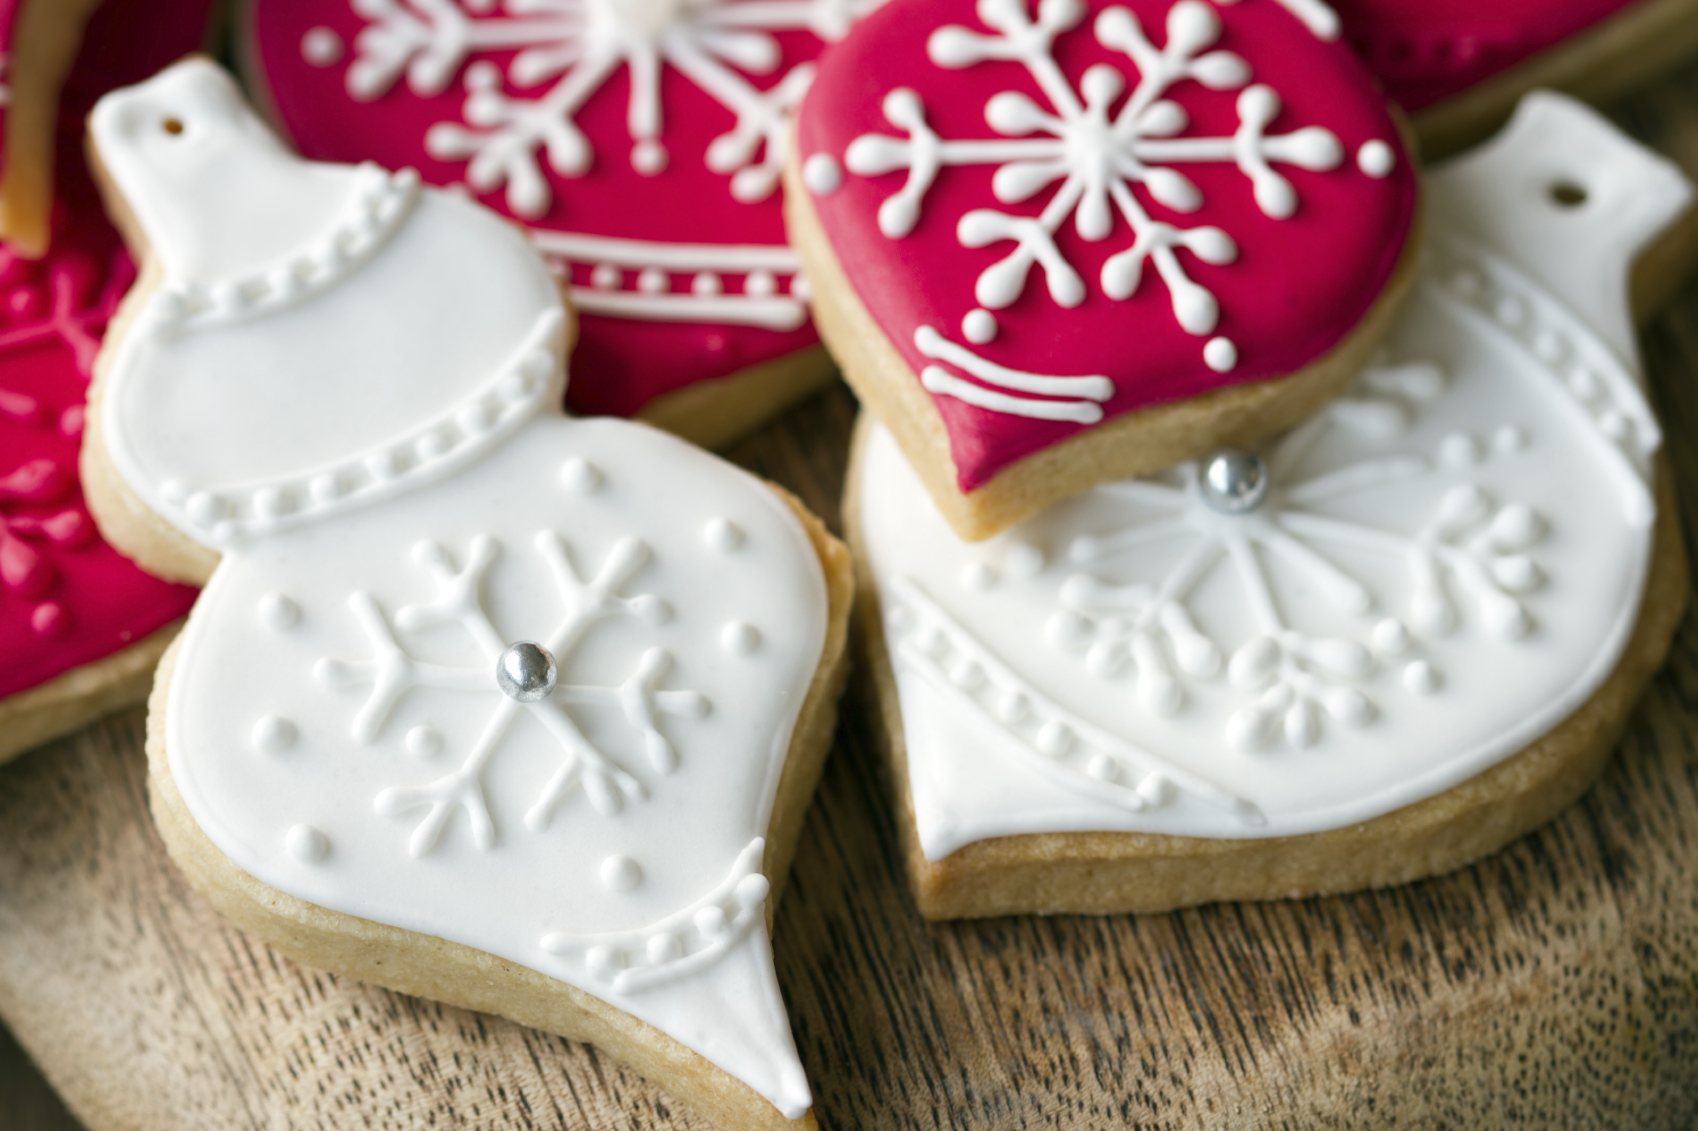 Best-Ever Sugar Cookies from Everyday Good Thinking, the official blog of @HamiltonBeach